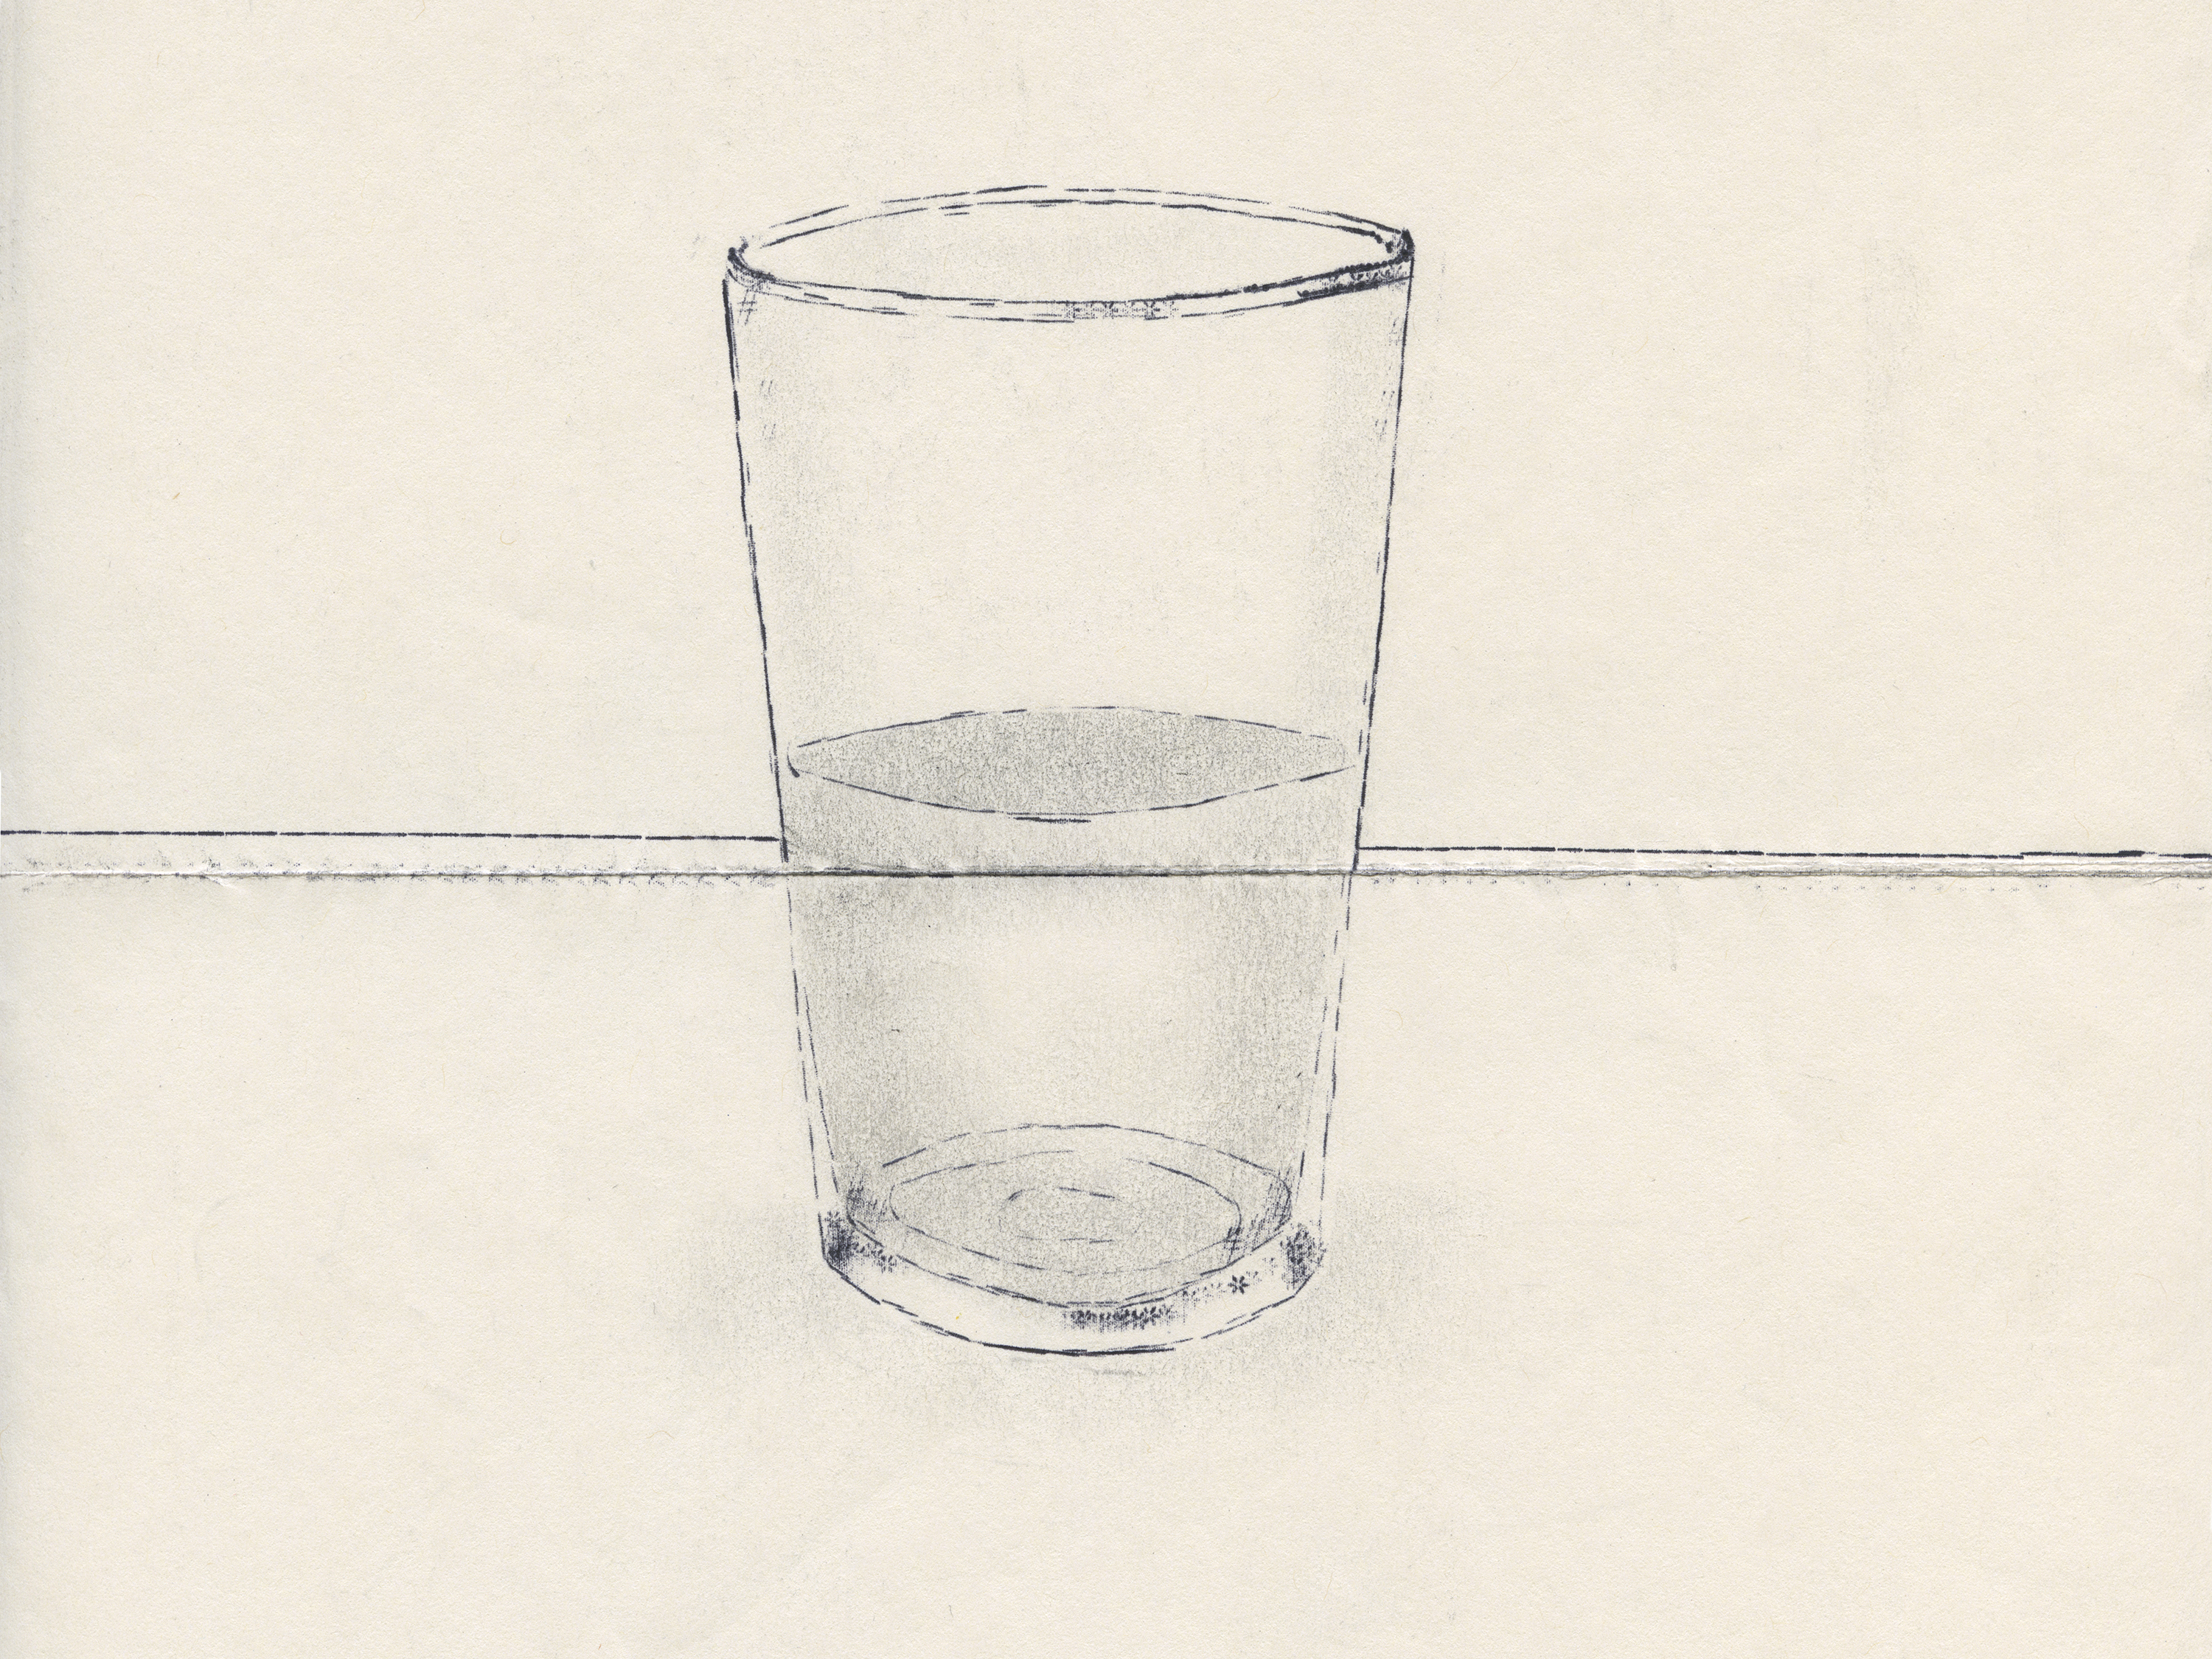 Drawing Moments of Everyday Life with a Typewriter: Lenka Clayton at Catharine Clark Gallery